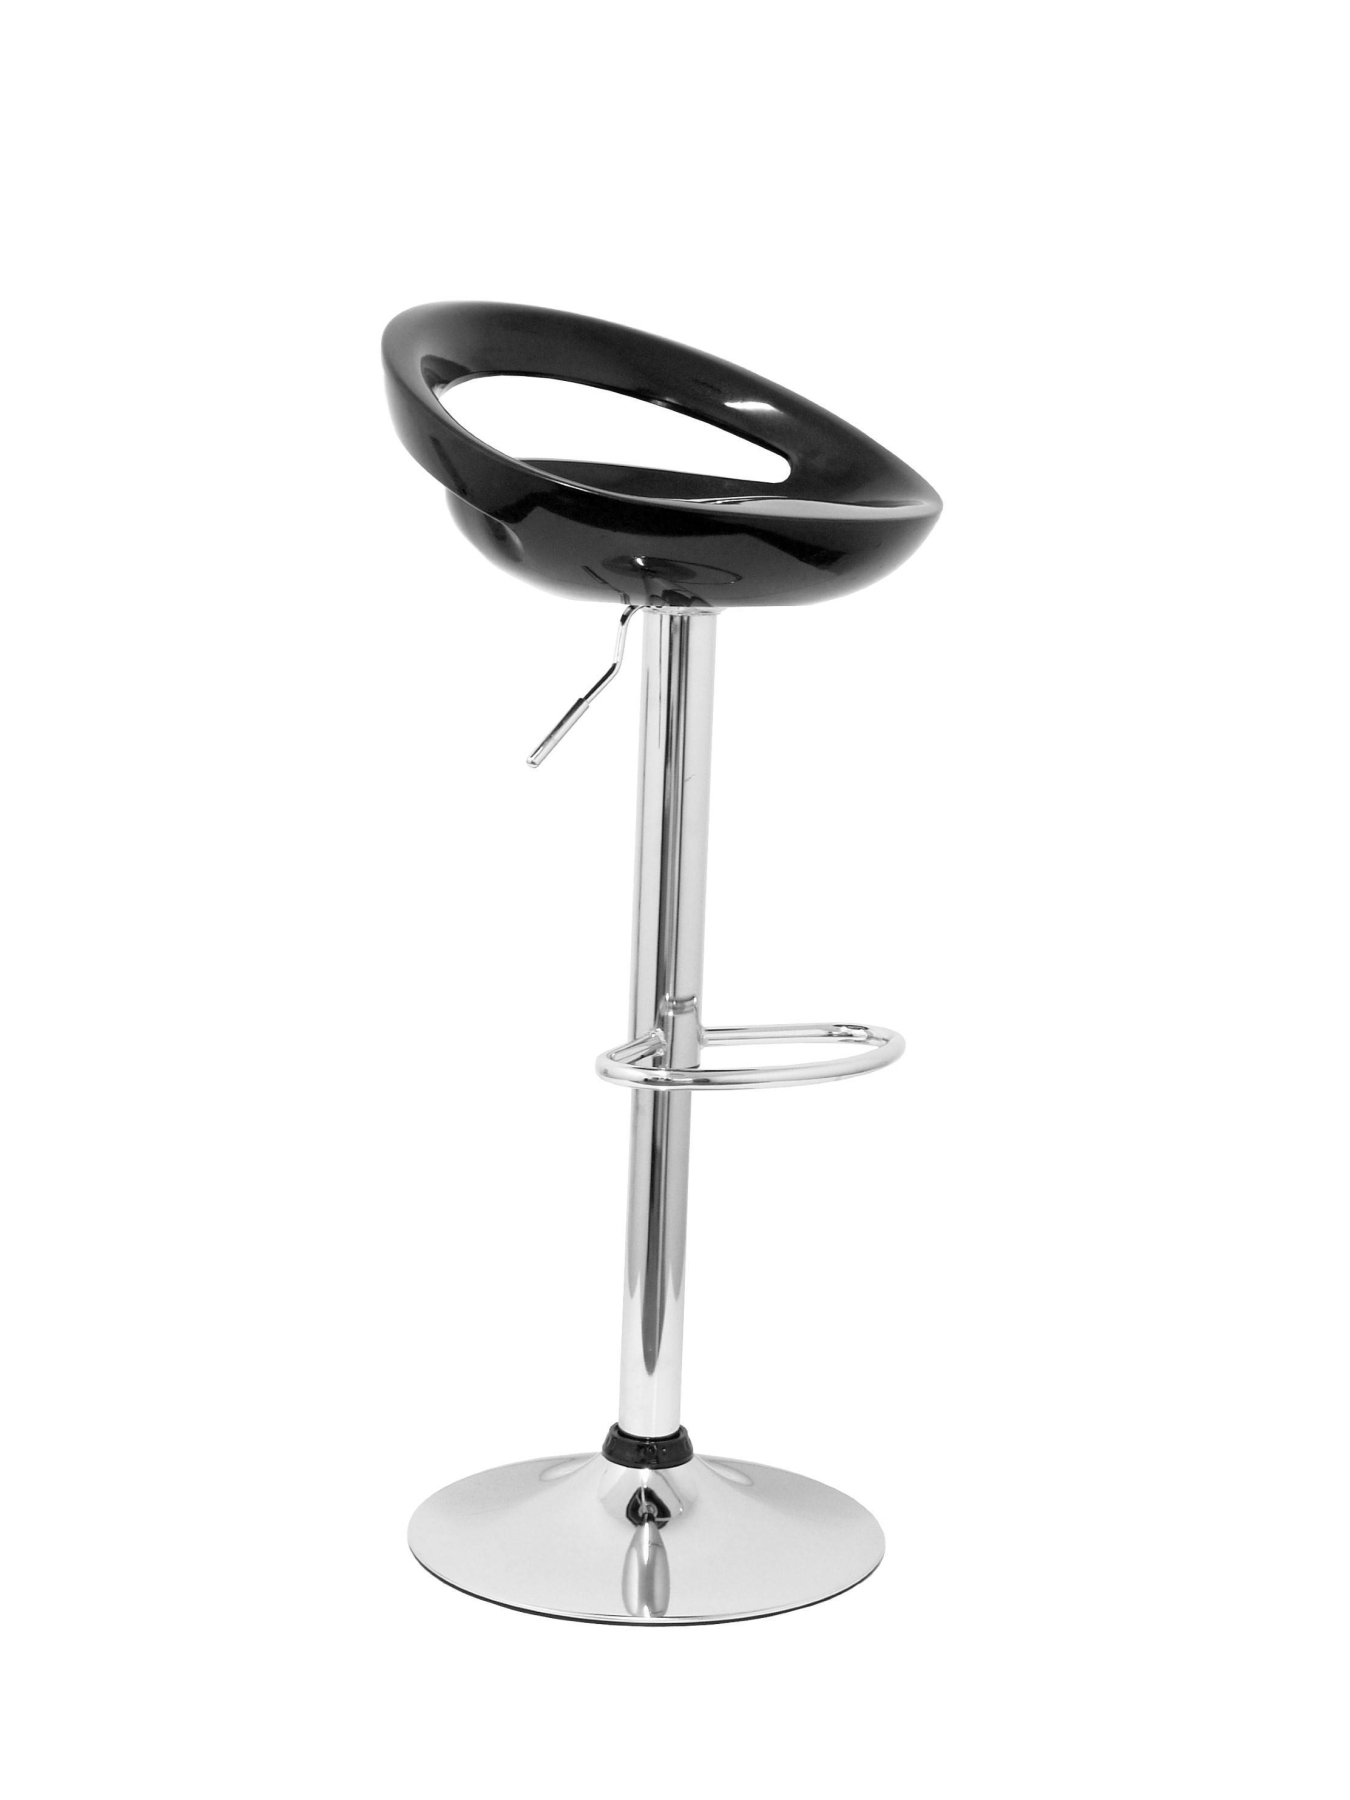 OUTLET Barroom Stool, Swivel And Height Adjustable By Gas Cylinder (include Hoop Footrest Chrome Finish) -Asie